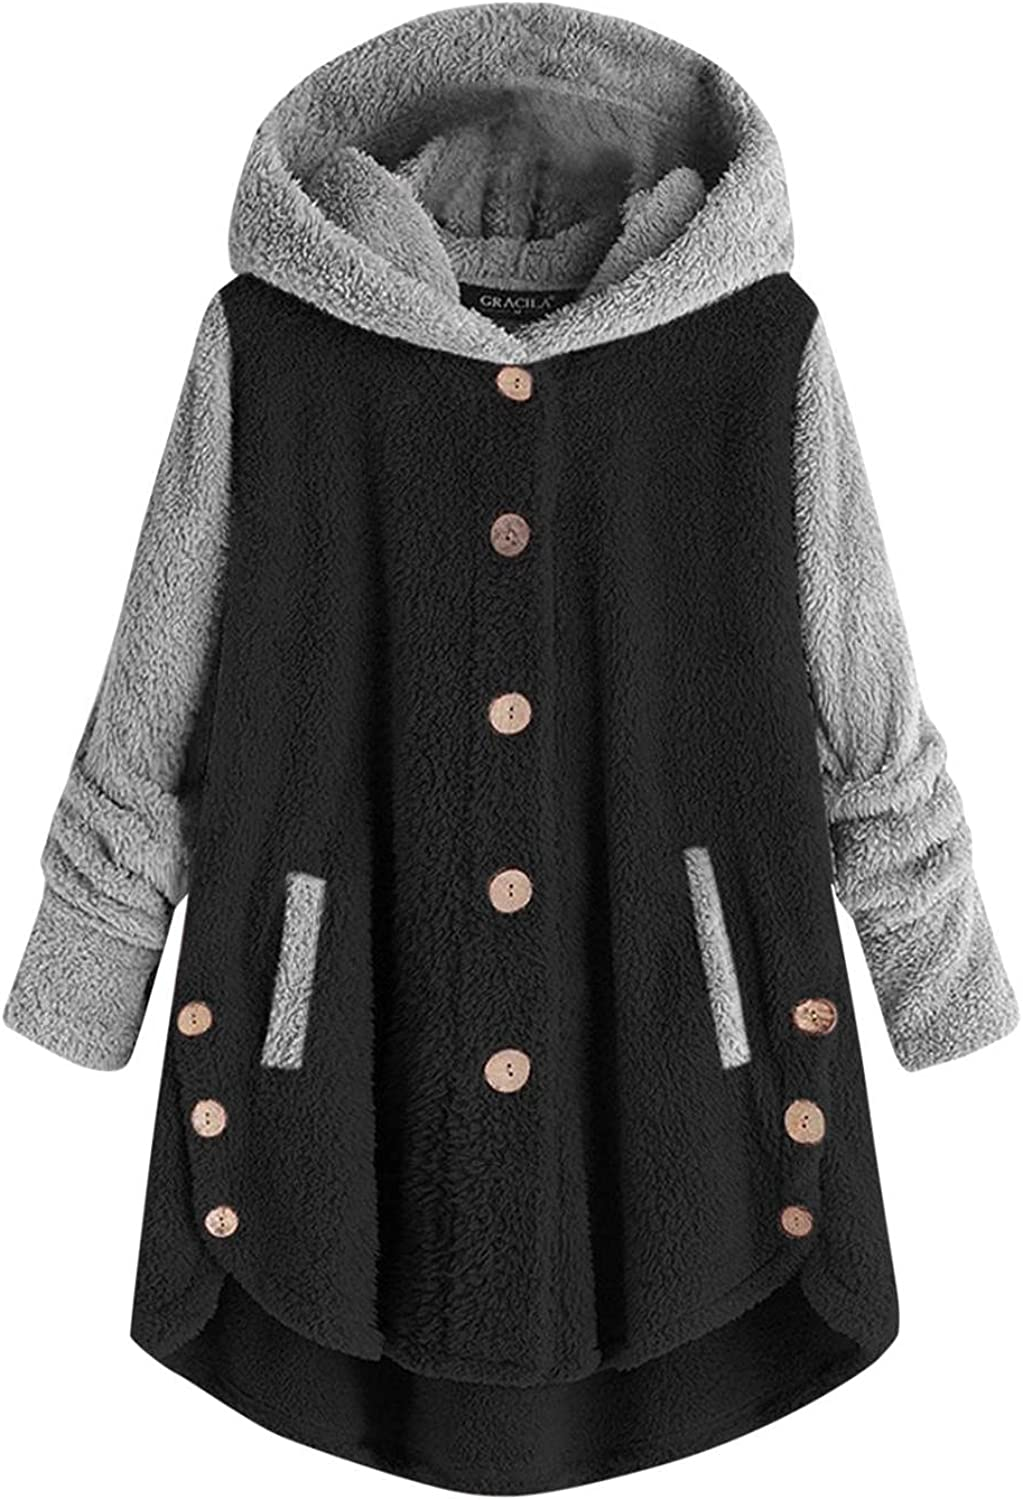 Jackets With Hoods for Women Plus Size Button Overcoat Patchworl Tops Hooded Trench Pullover Loose Sweatshirts Outwear